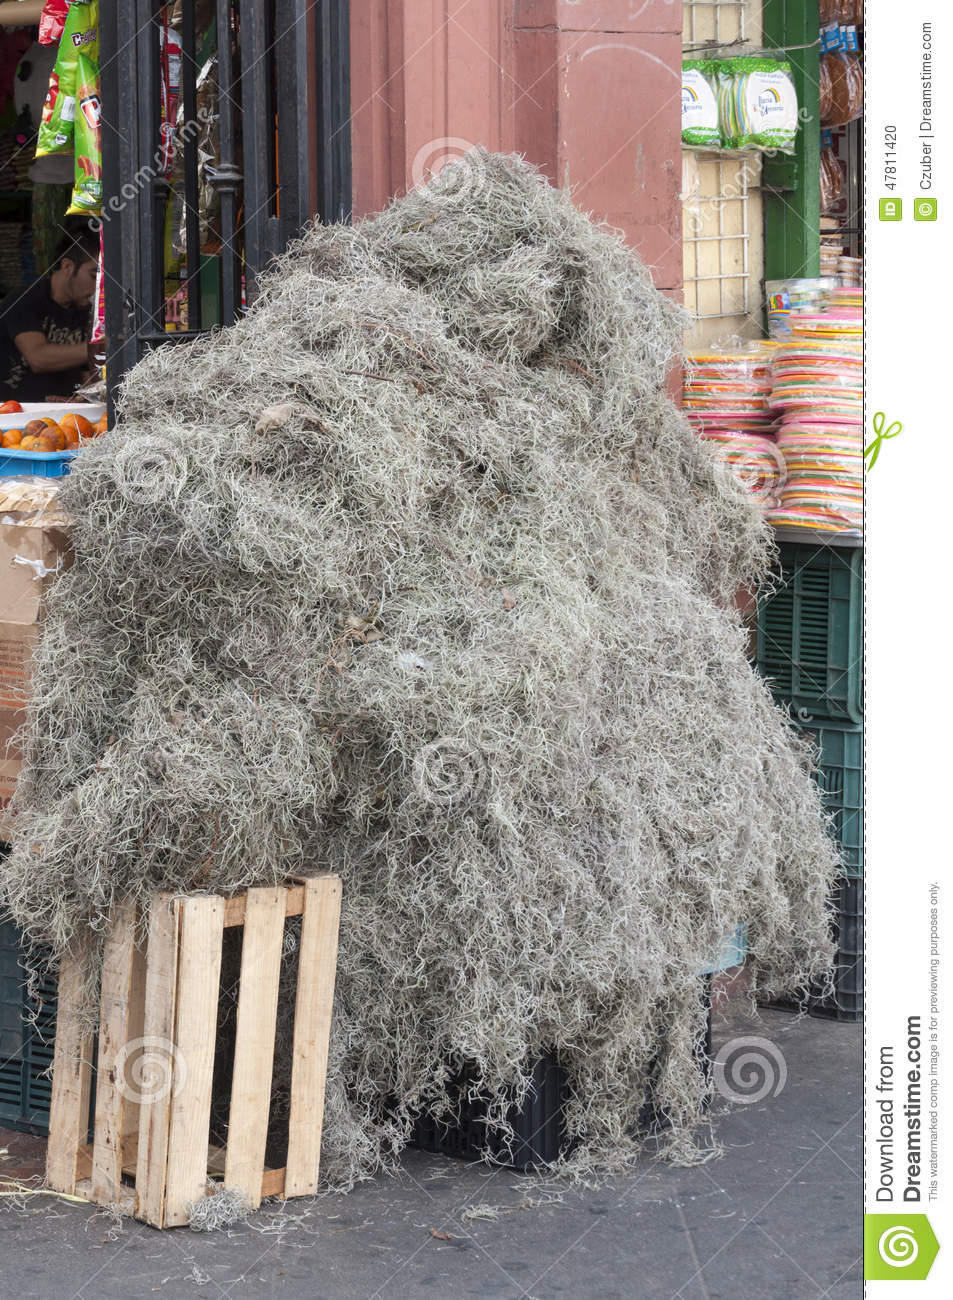 Spanish Moss For Sale Editorial Image Image 47811420